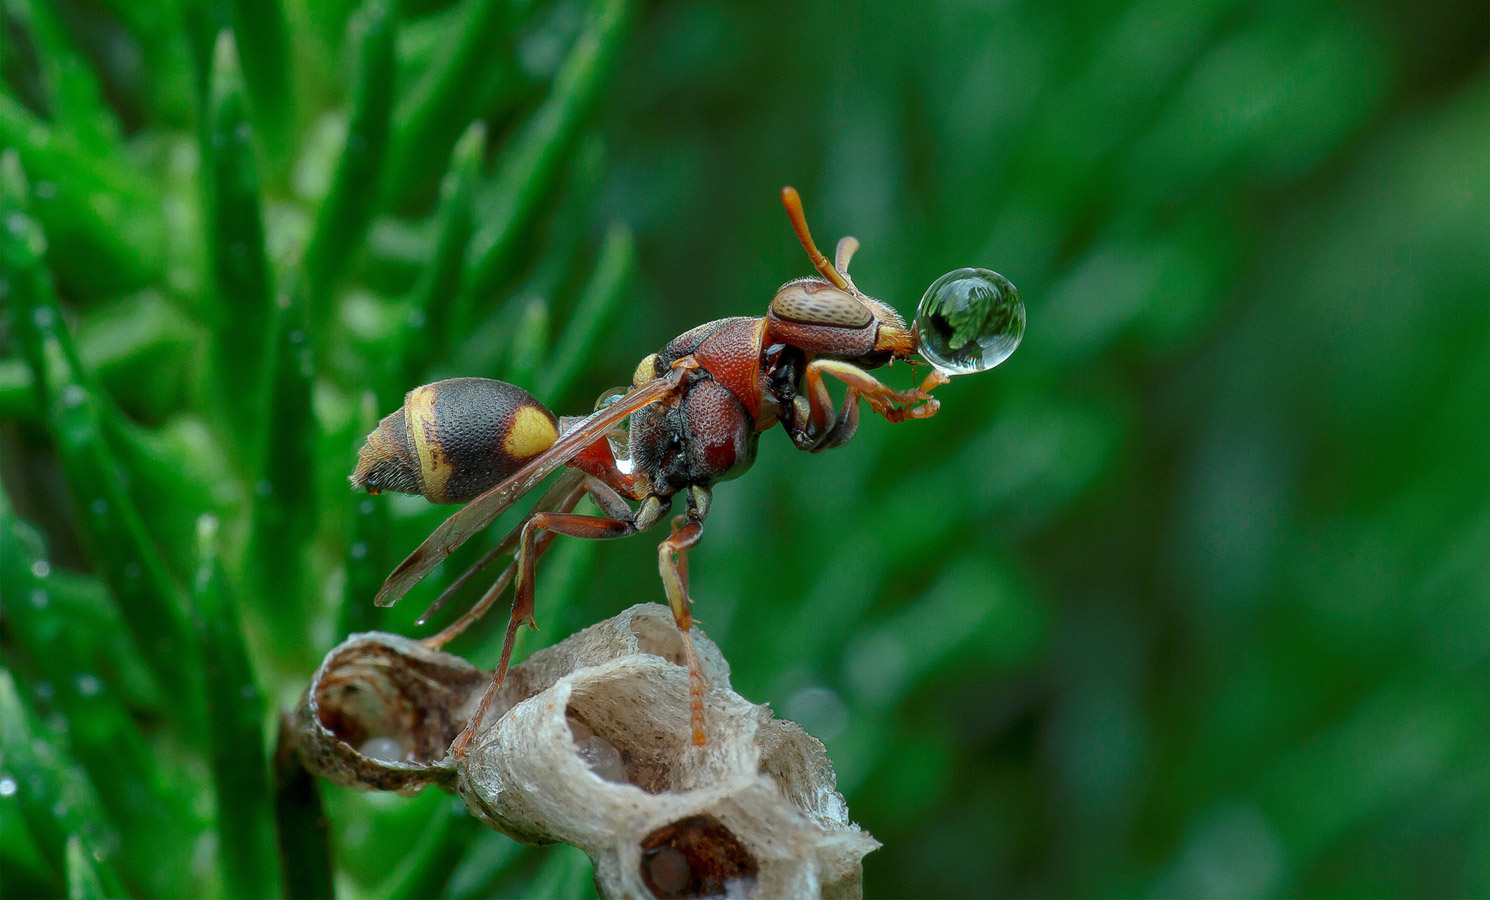 Wasp Blowing Water Bubble, © Lim Choo How, Malaysia, 1 place in nomination Macro, 35AWARDS Photo Contest